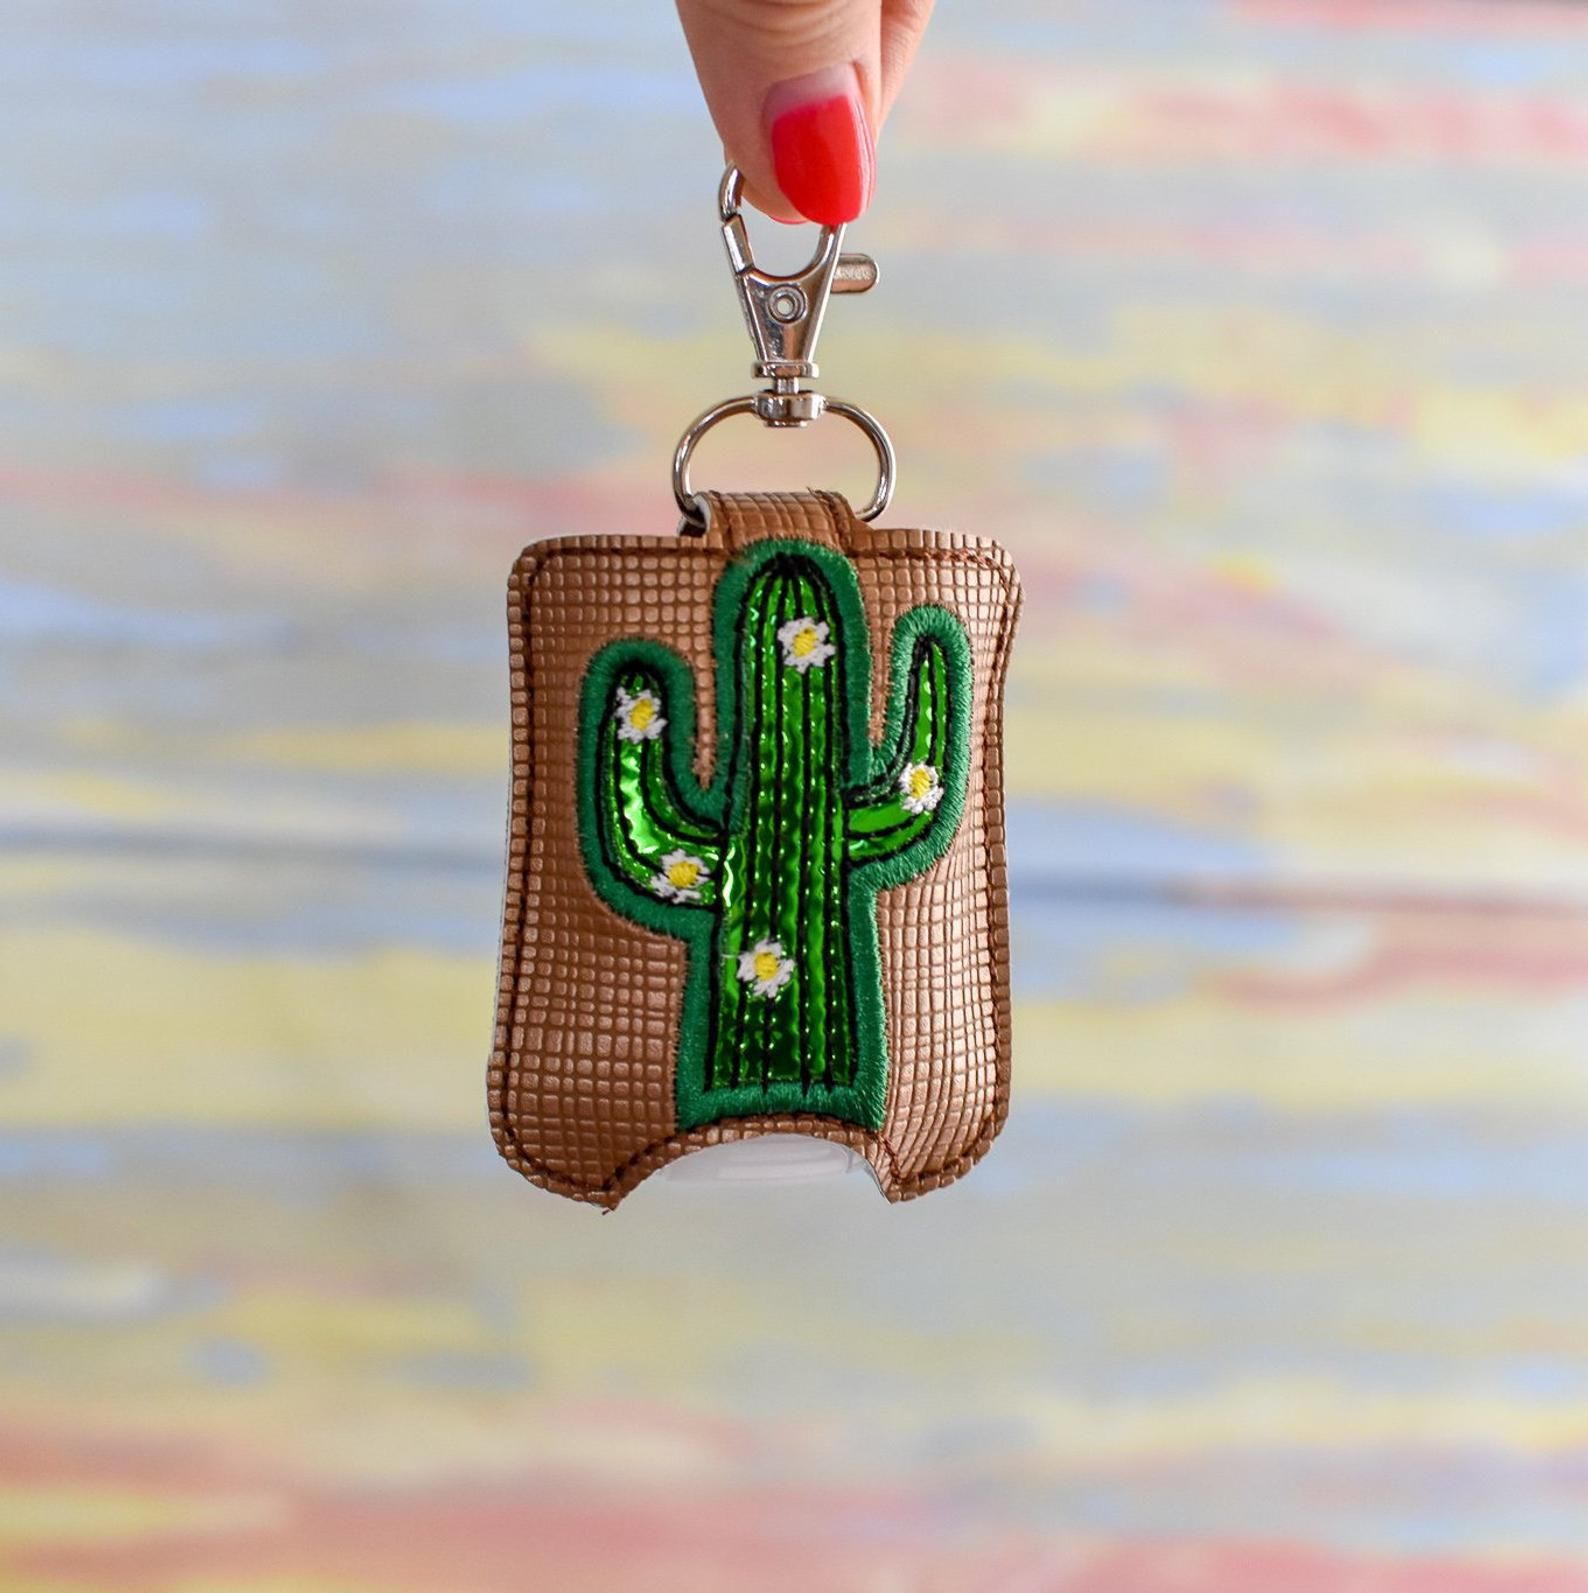 Cactus Sanitizer Holder Etsy Hand Sanitizer Holder Cute